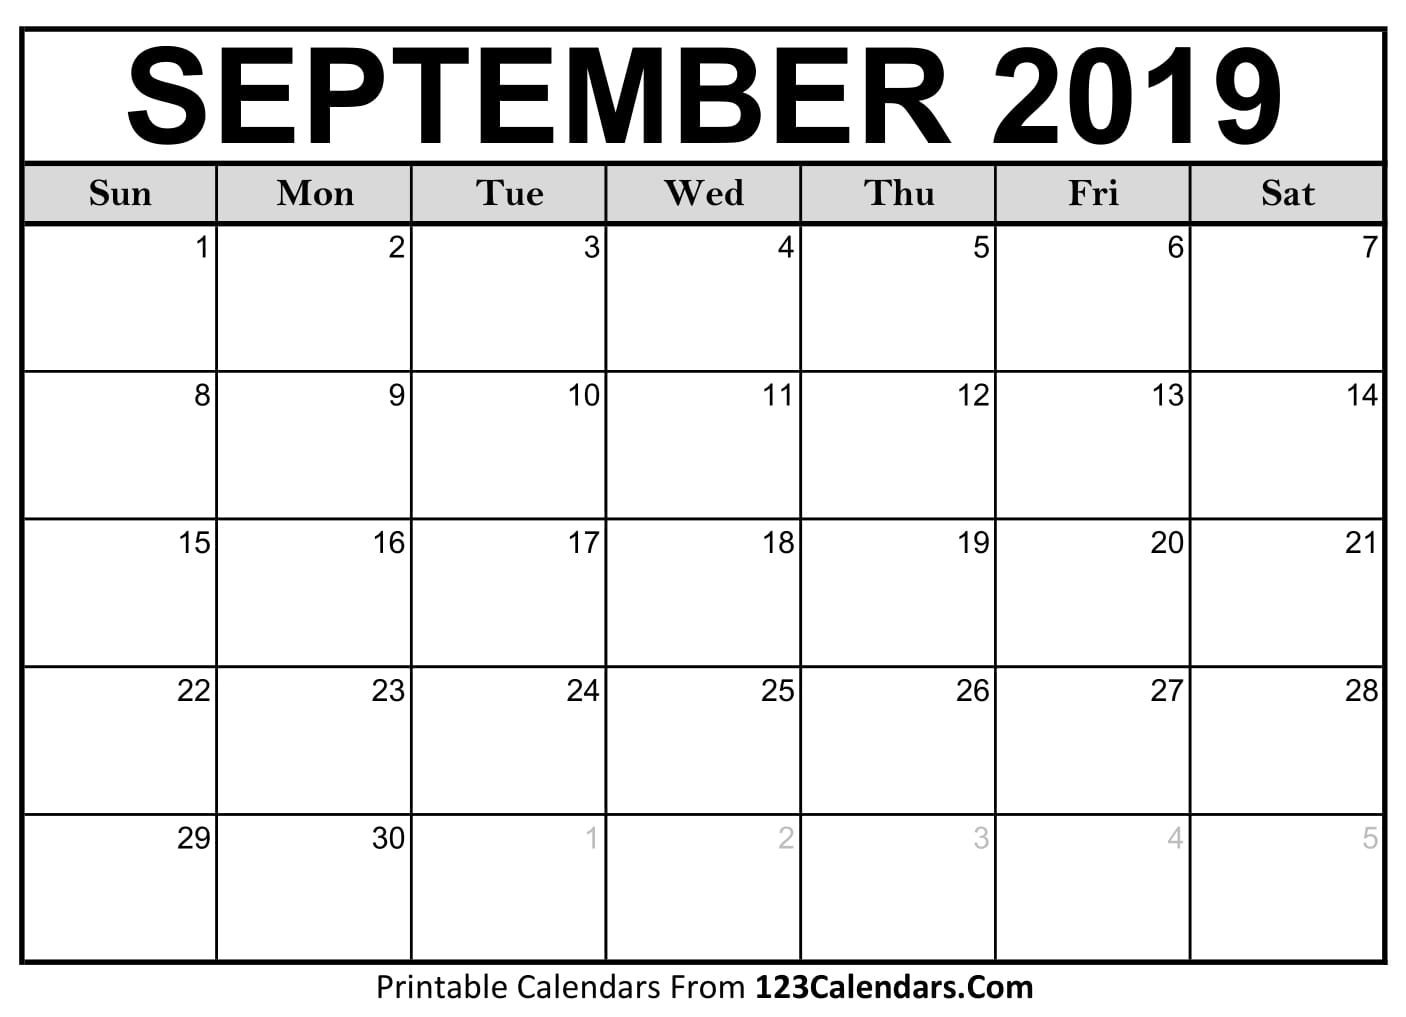 photo about Printable Calendars named September 2019 Printable Calendar